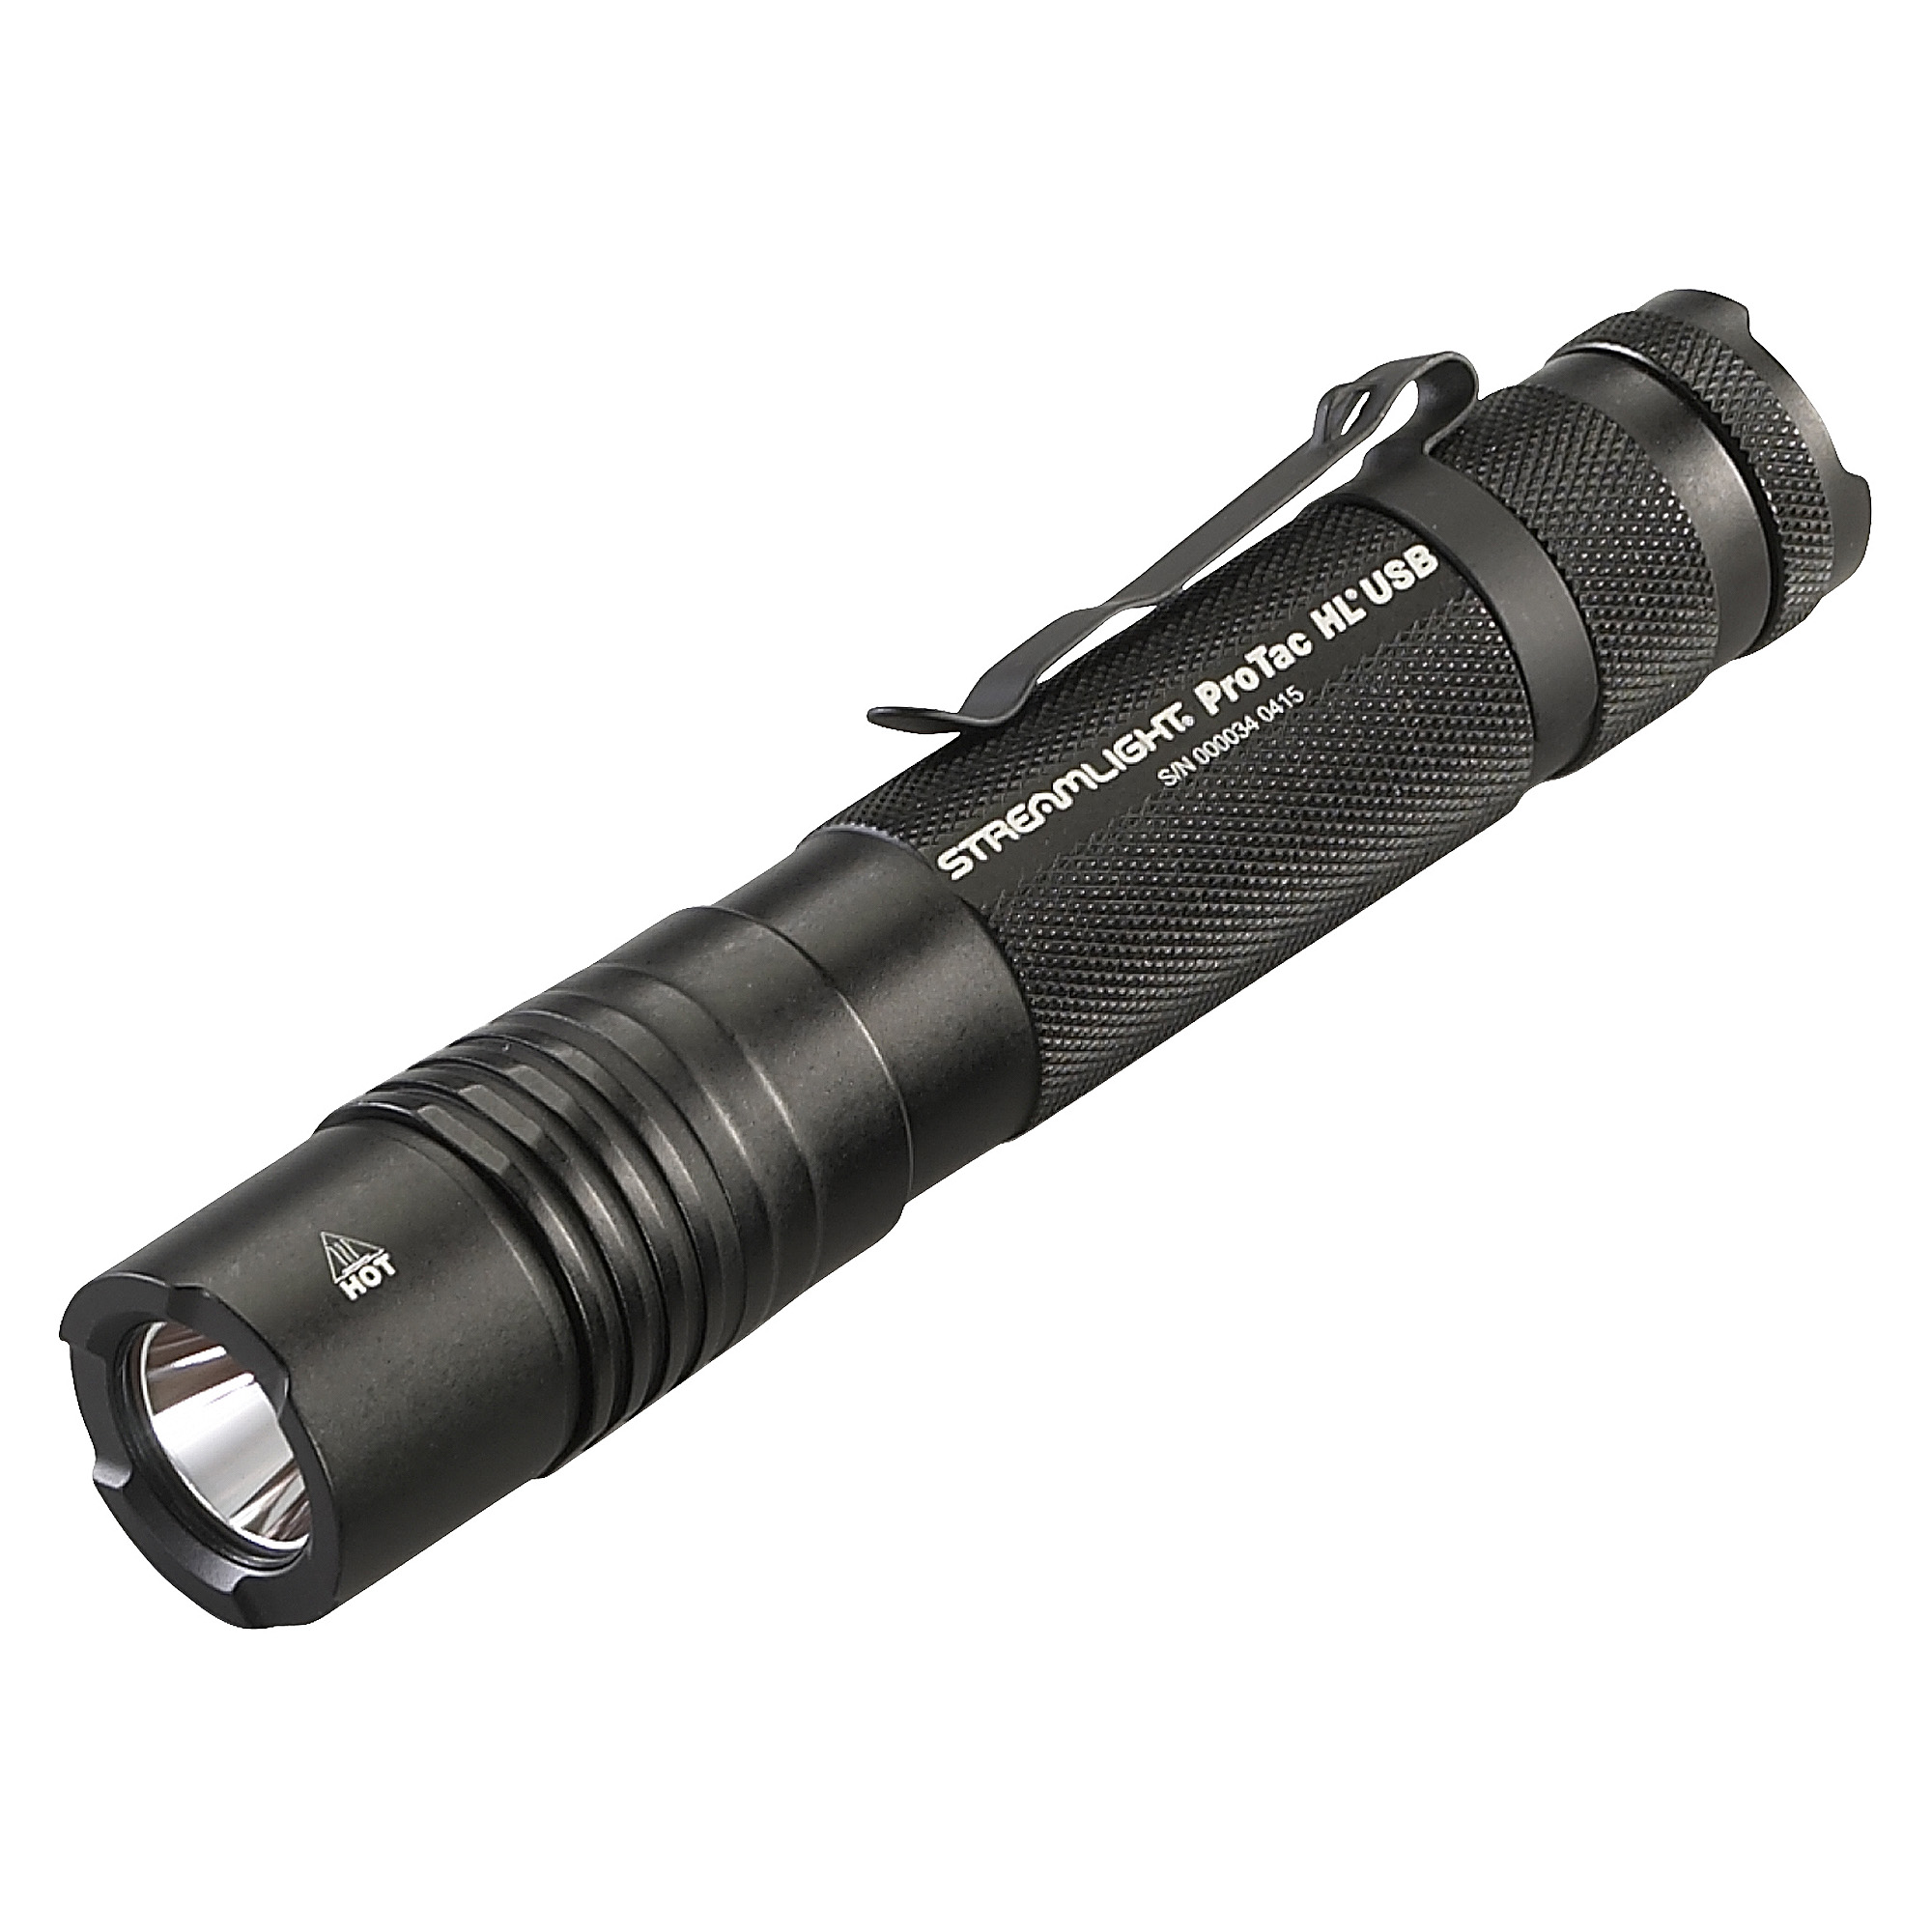 "USB rechargeable"" high lumen tactical light features multi-fuel design. It accepts multiple battery sources to use as a back up so you'll always have power when you need it. Now shining brighter at 1""000 lumens."